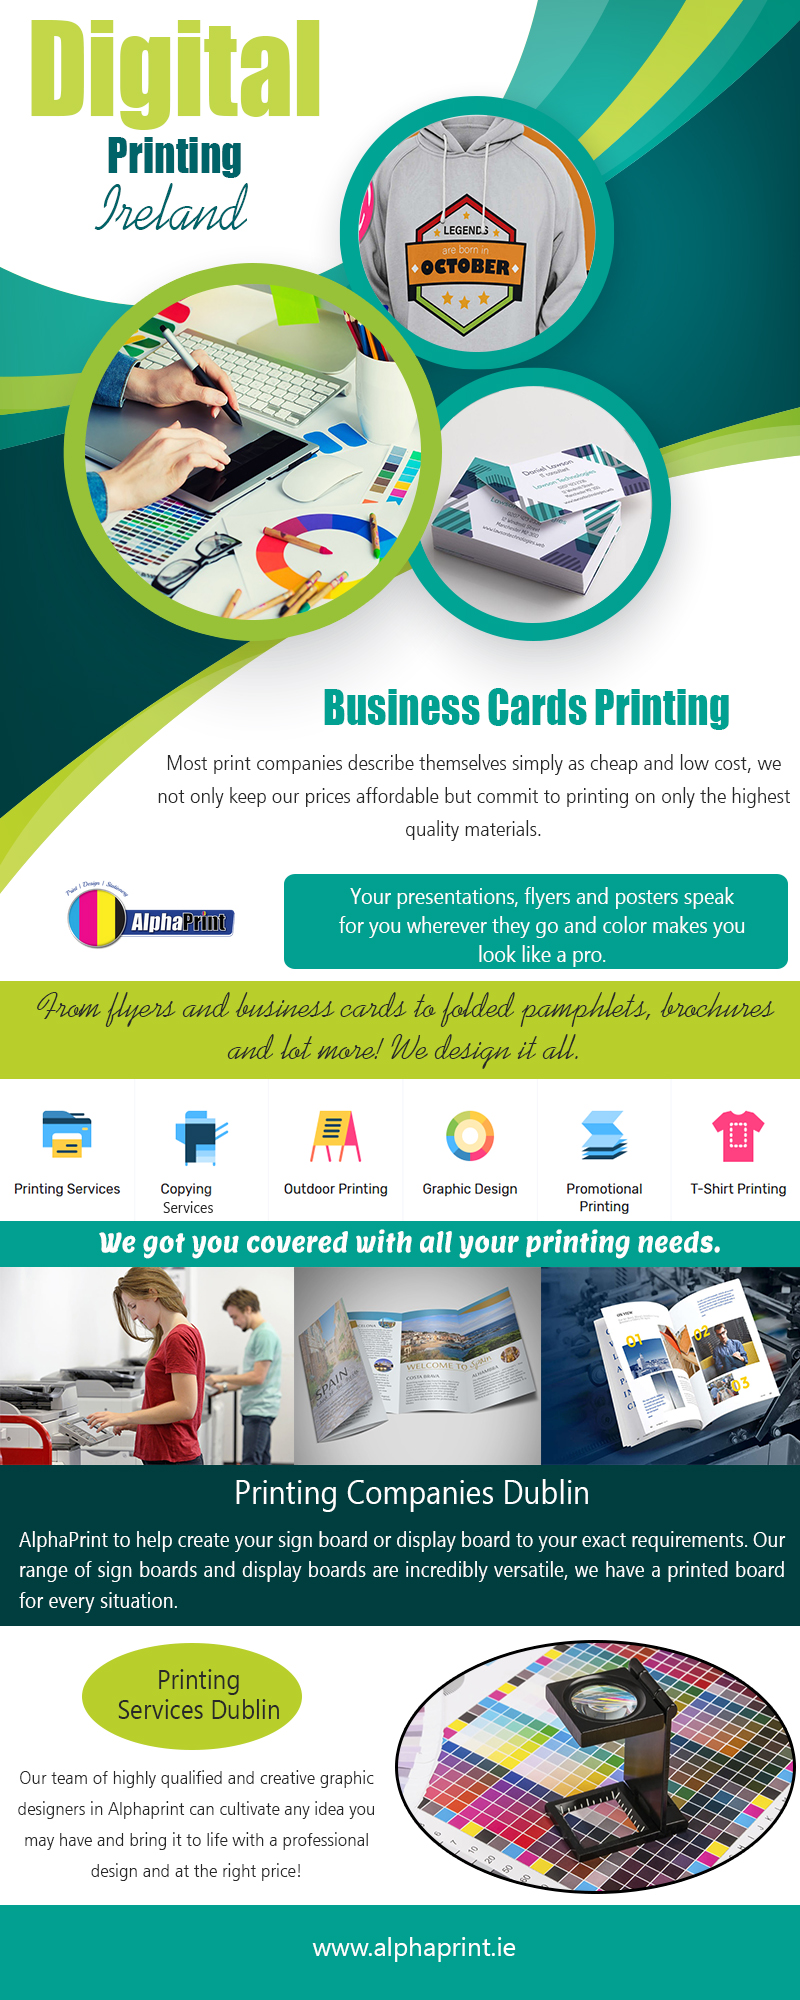 Digital Printing Ireland | Call – 01 426 4844 | alphaprint.ie